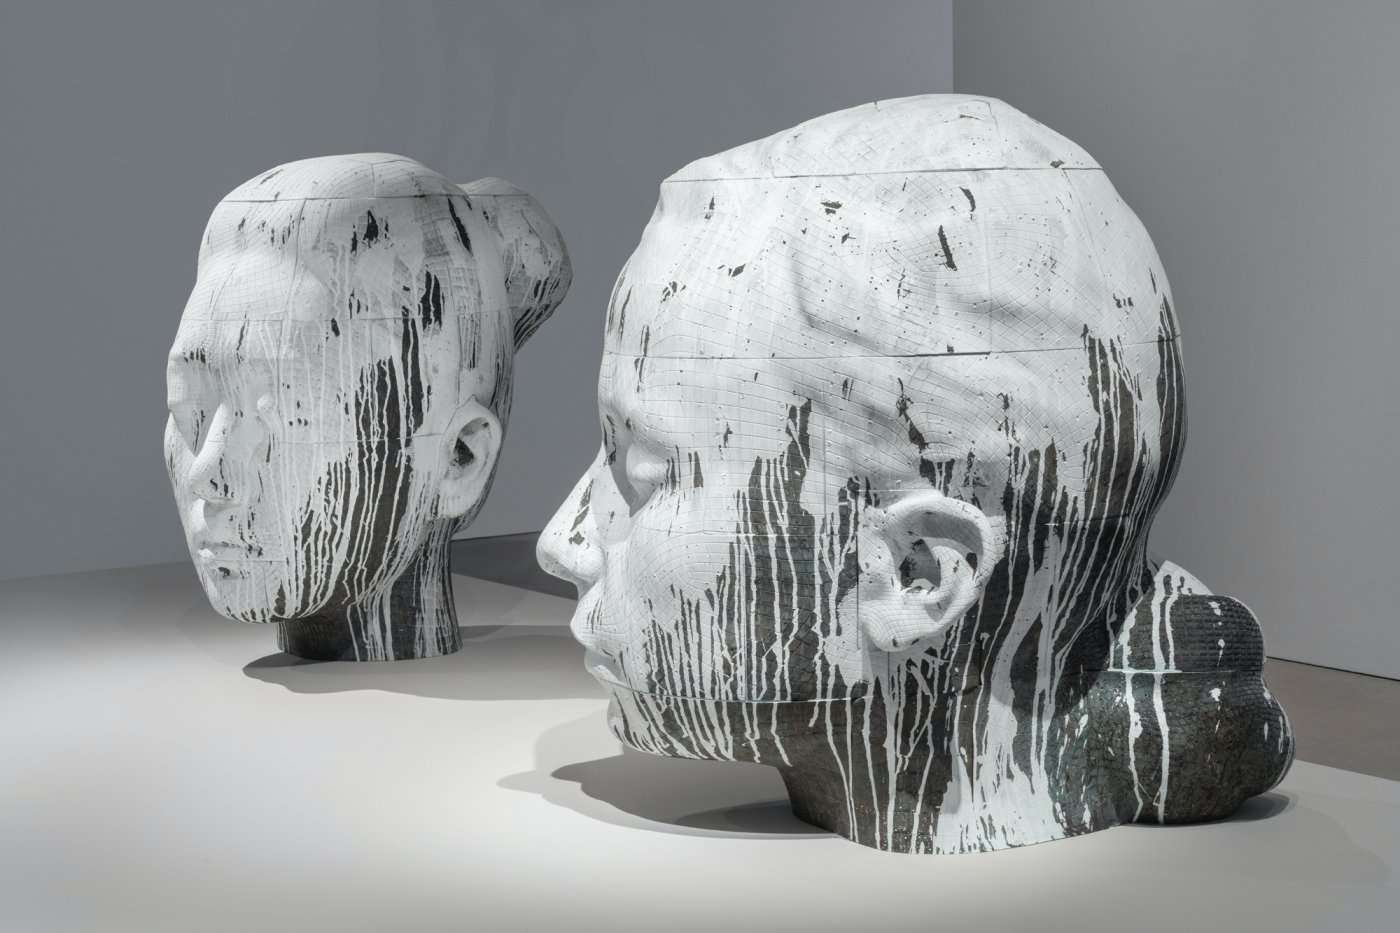 Gray Warehouse Jaume Plensa 5